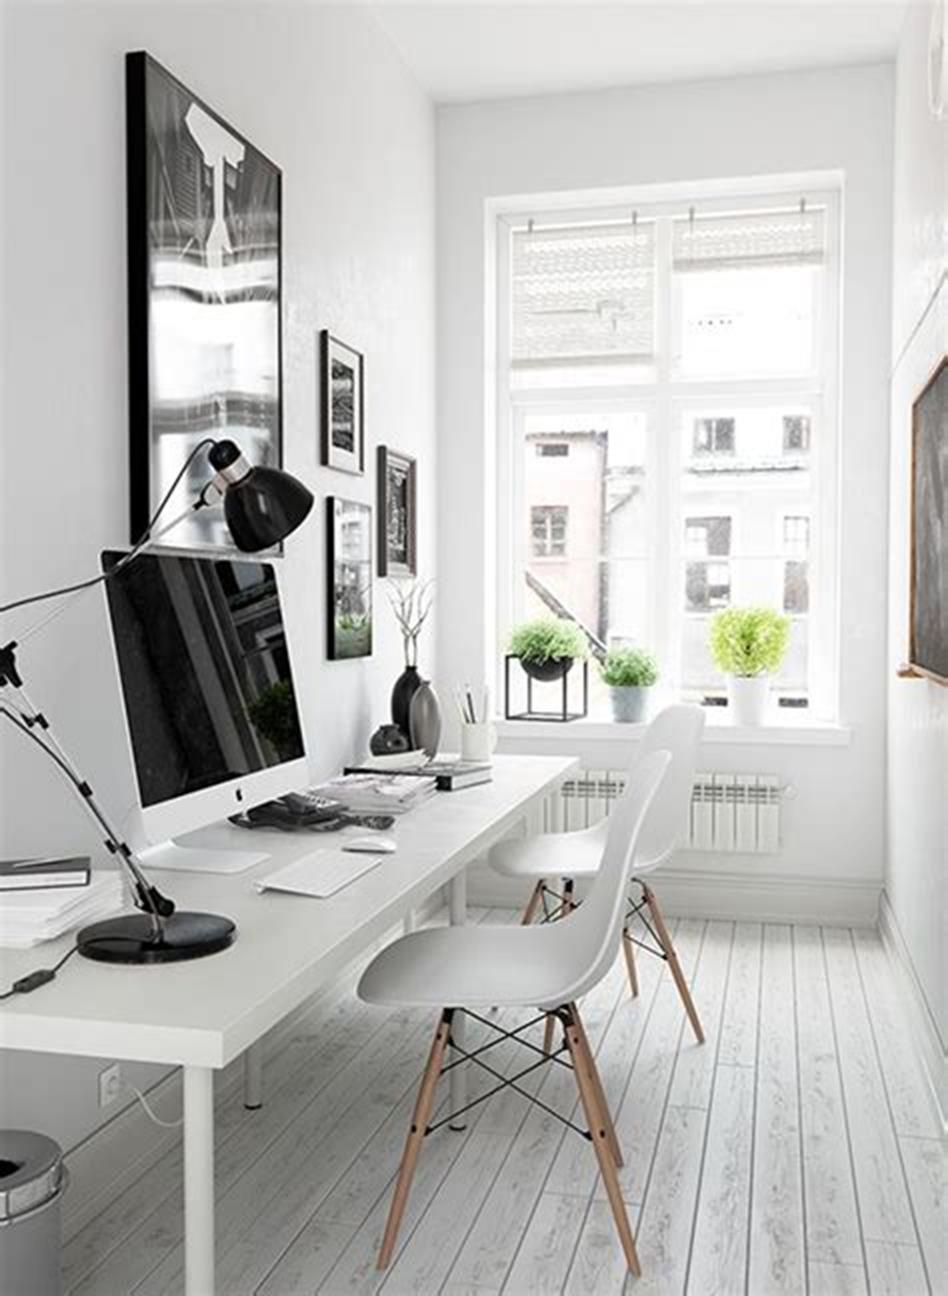 50 Best Small Space Office Decorating Ideas On a Budget 2019 4